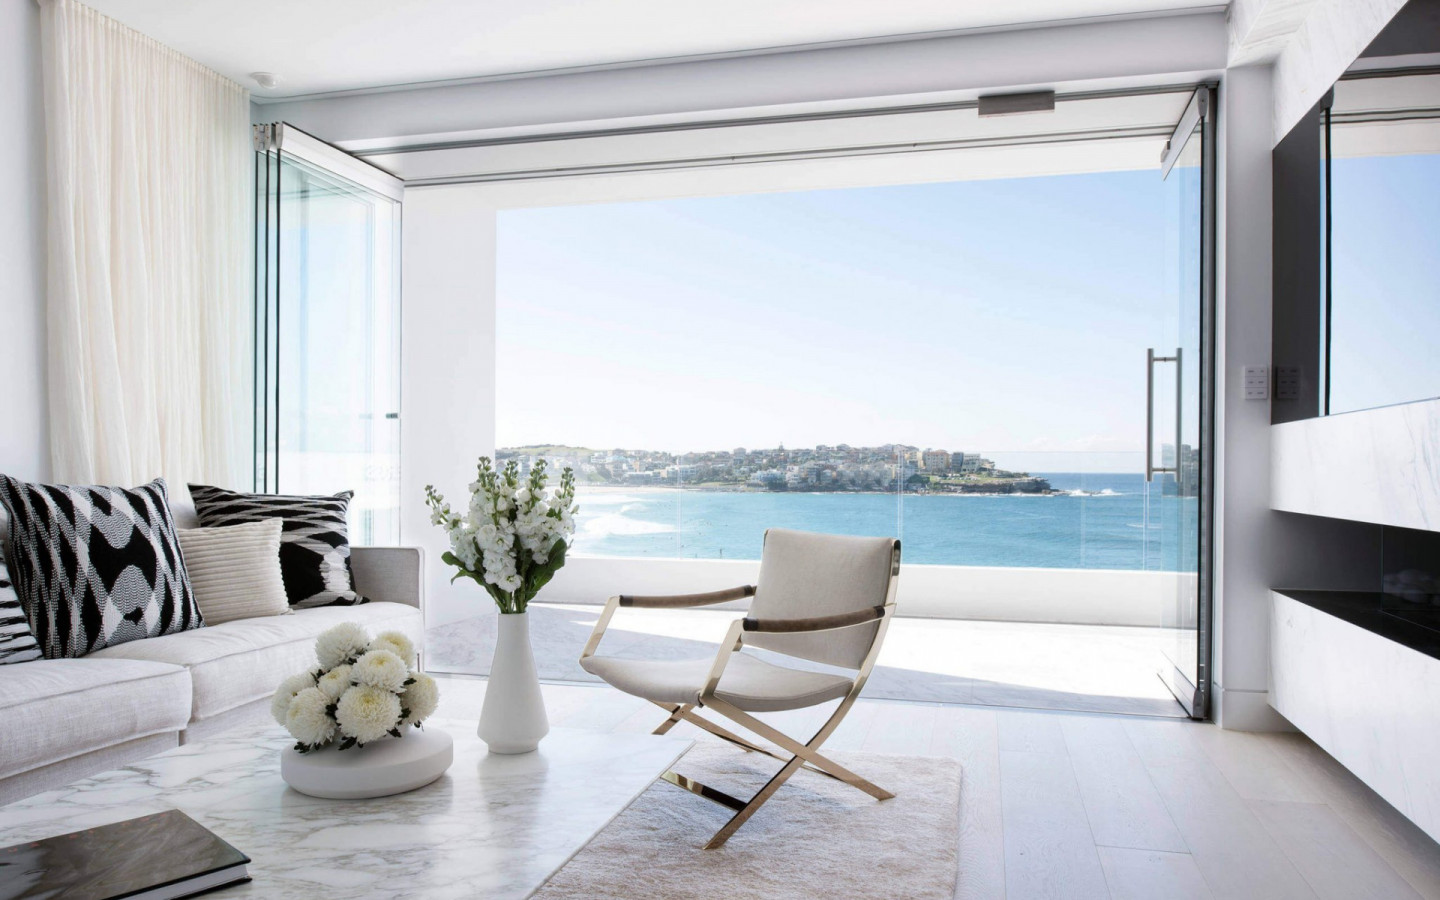 bright-apartments-modern-interior-design-minimalism-white-sofa-stylish-apartments-by-the-sea